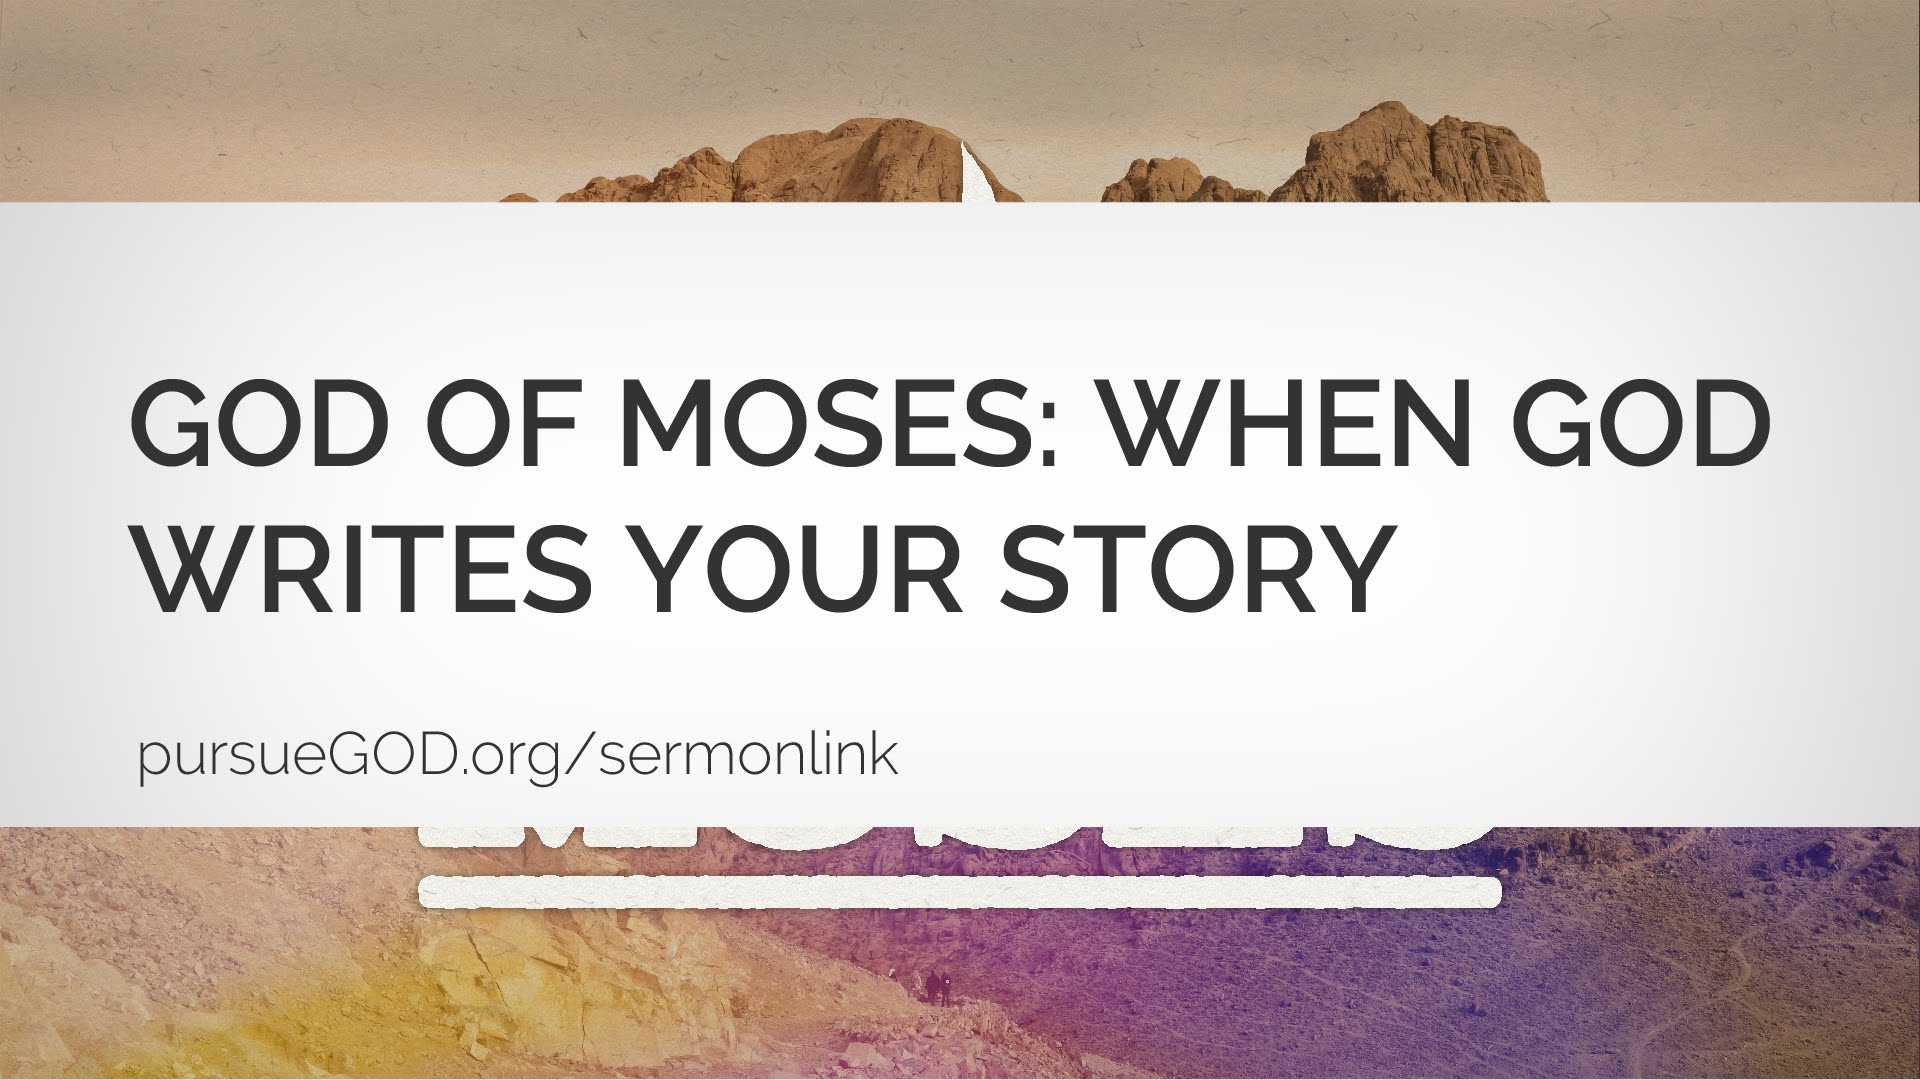 God of Moses: When God Writes Your Story